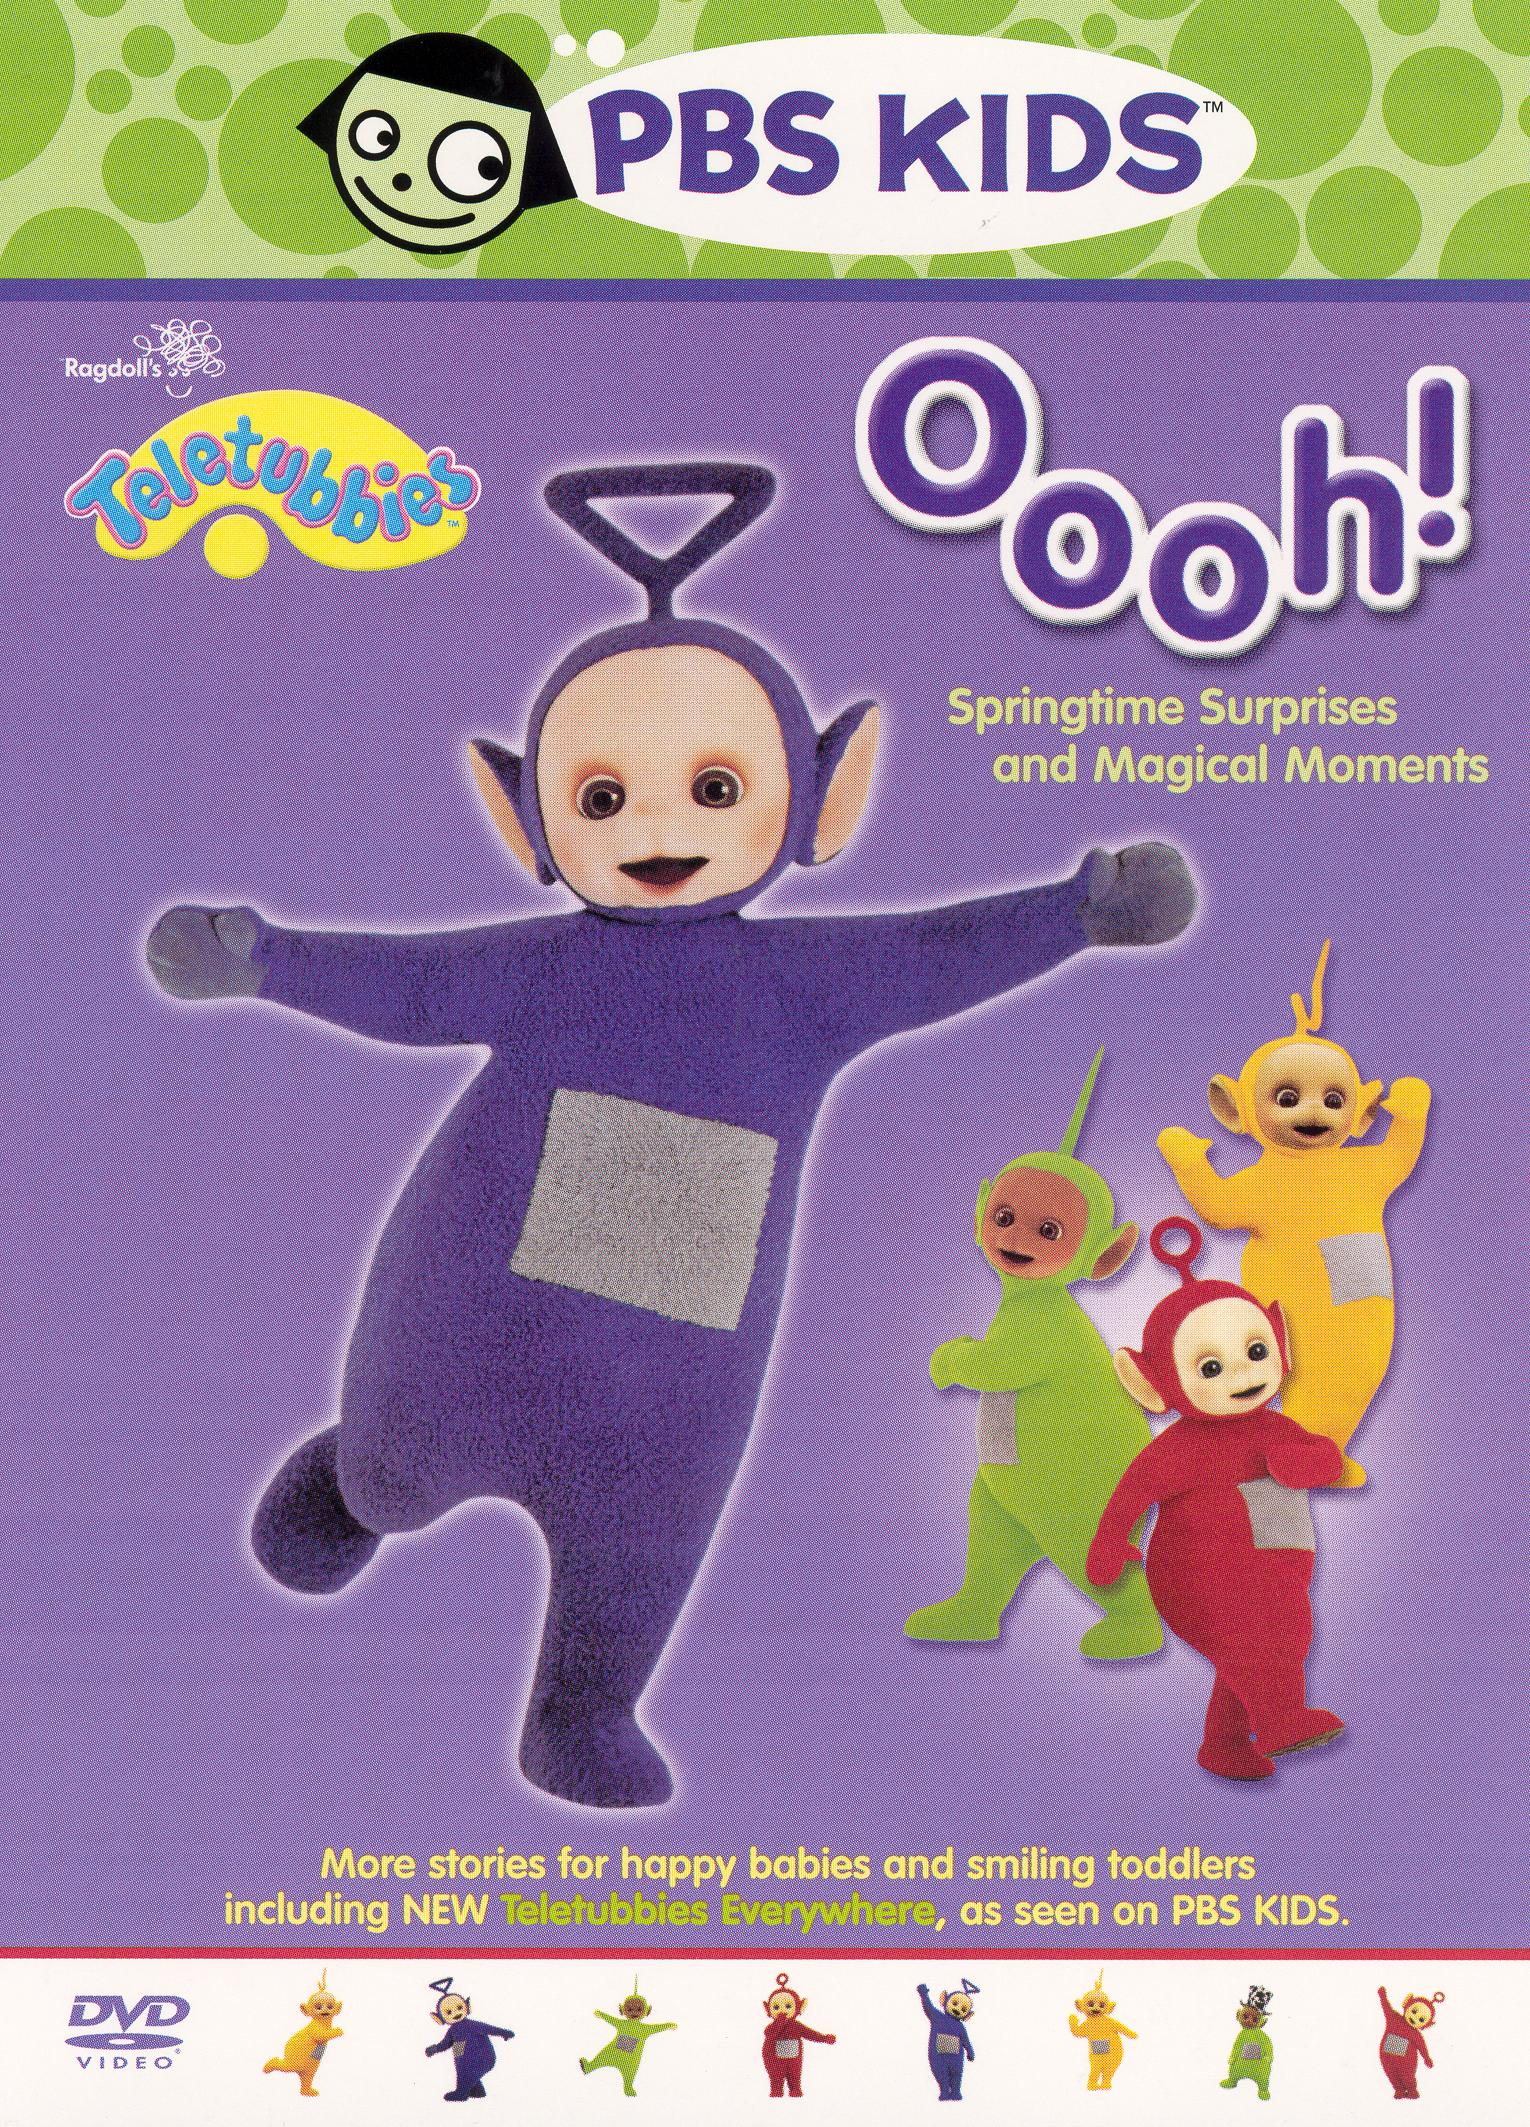 Teletubbies: Oooh! - Springtime Surprises and Magical Moments